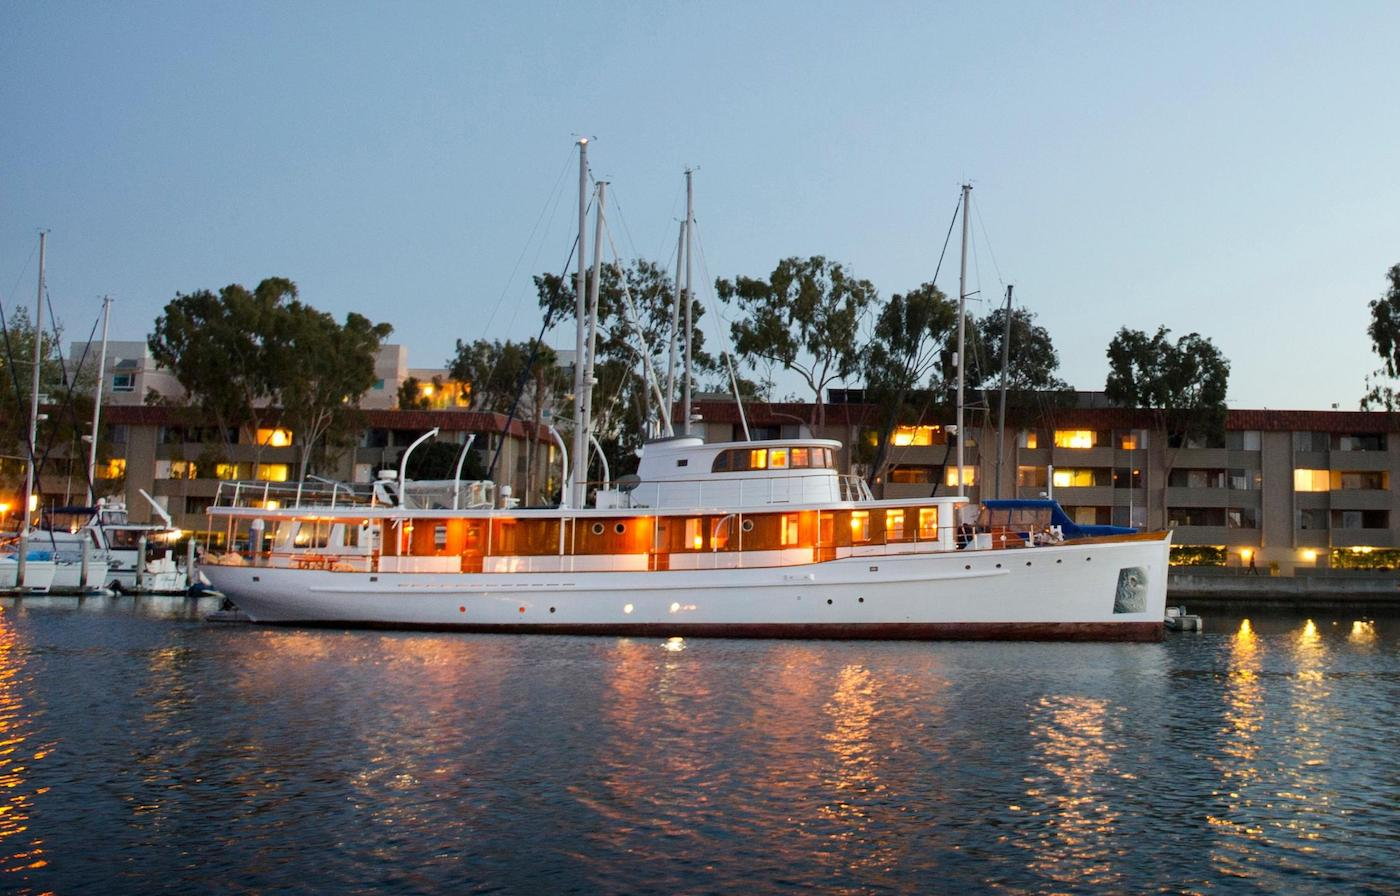 105 Classic Antique 1929 Motor Yacht Vintage Highlight